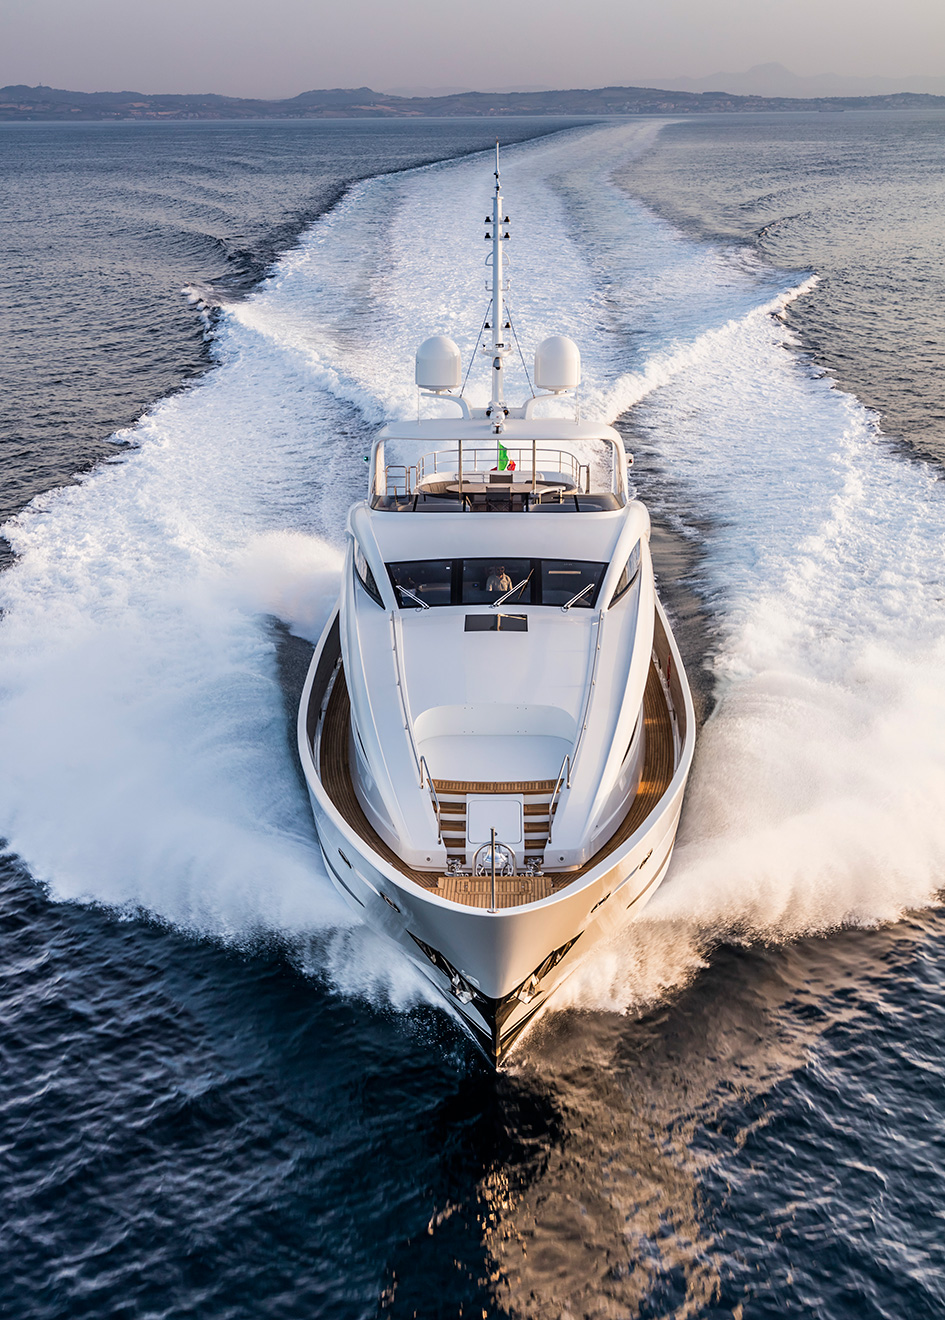 bow-view-of-the-isa-120-yacht-clorinda